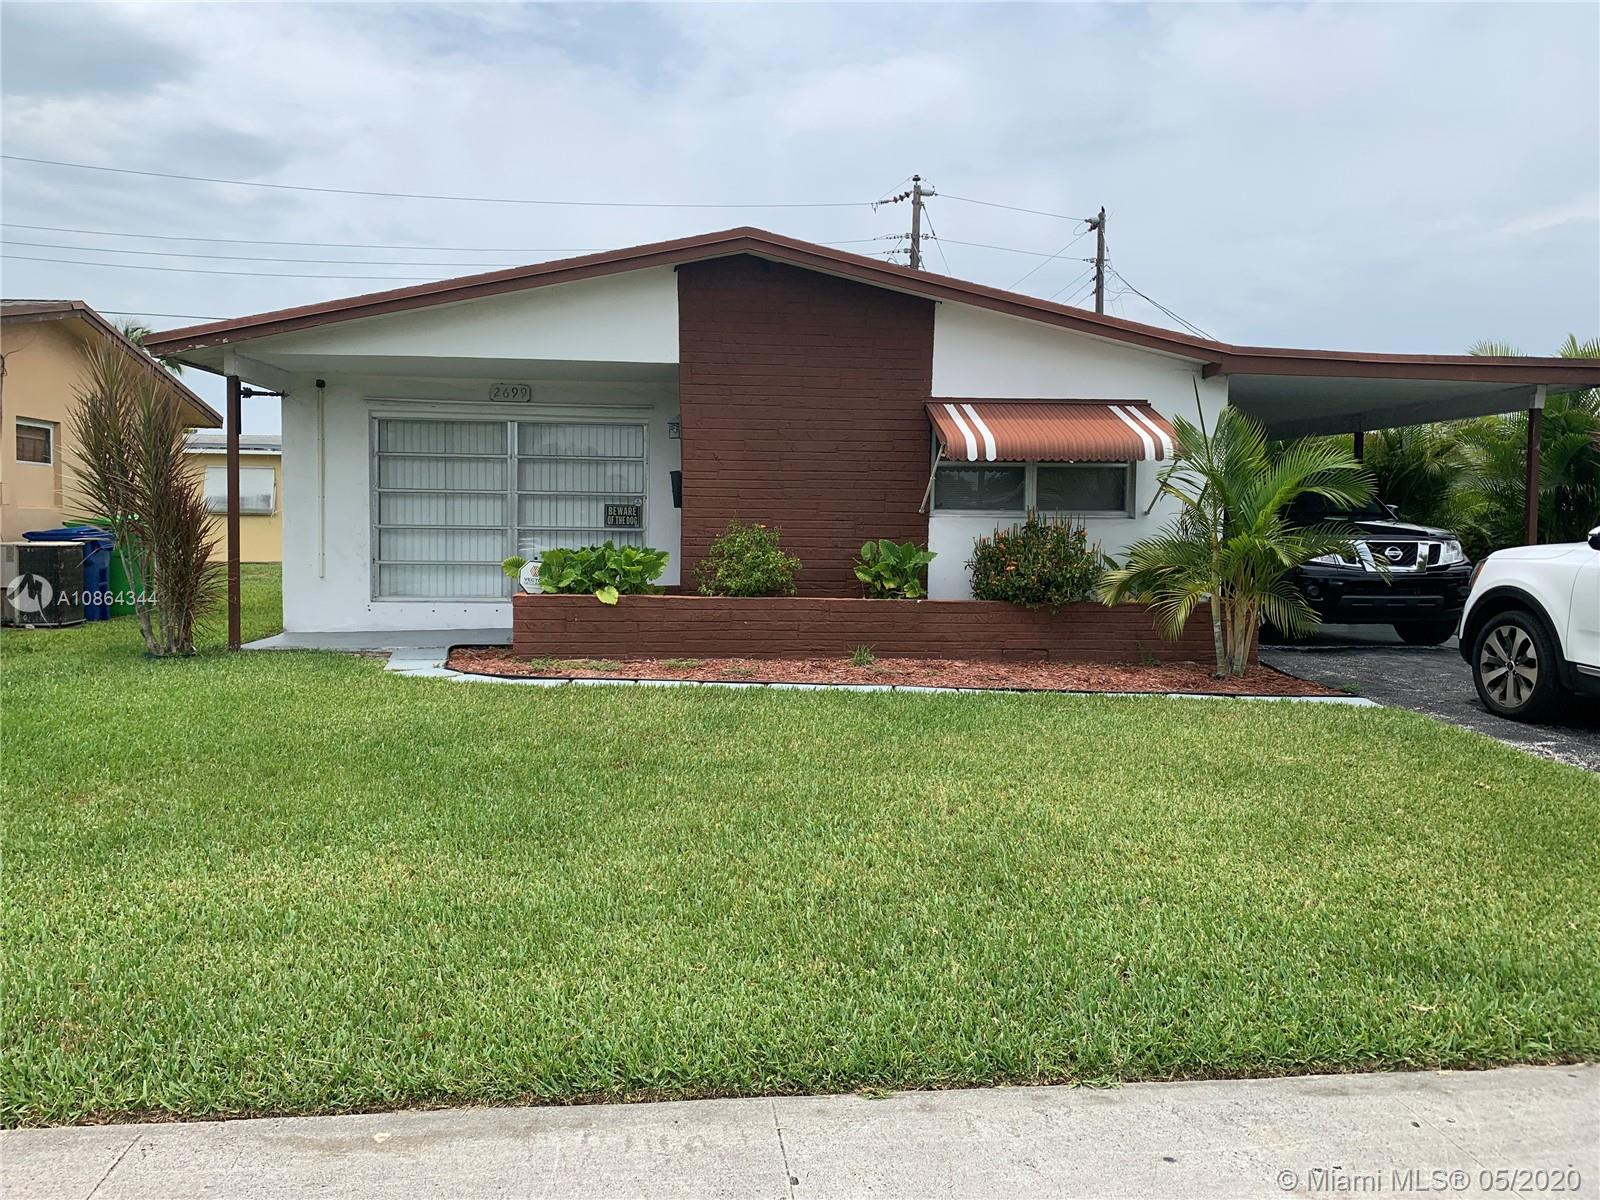 Beautiful starter home well kept and ready for a new owner to call its own..Also great for investors great rental income with low HOA fee(57.59 monthly). Laminate flooring throught the house. Carport covers 2 cars with additional driveway safe for one extra car. Full laundry and utility room. enclosed porch or extra bedroom...